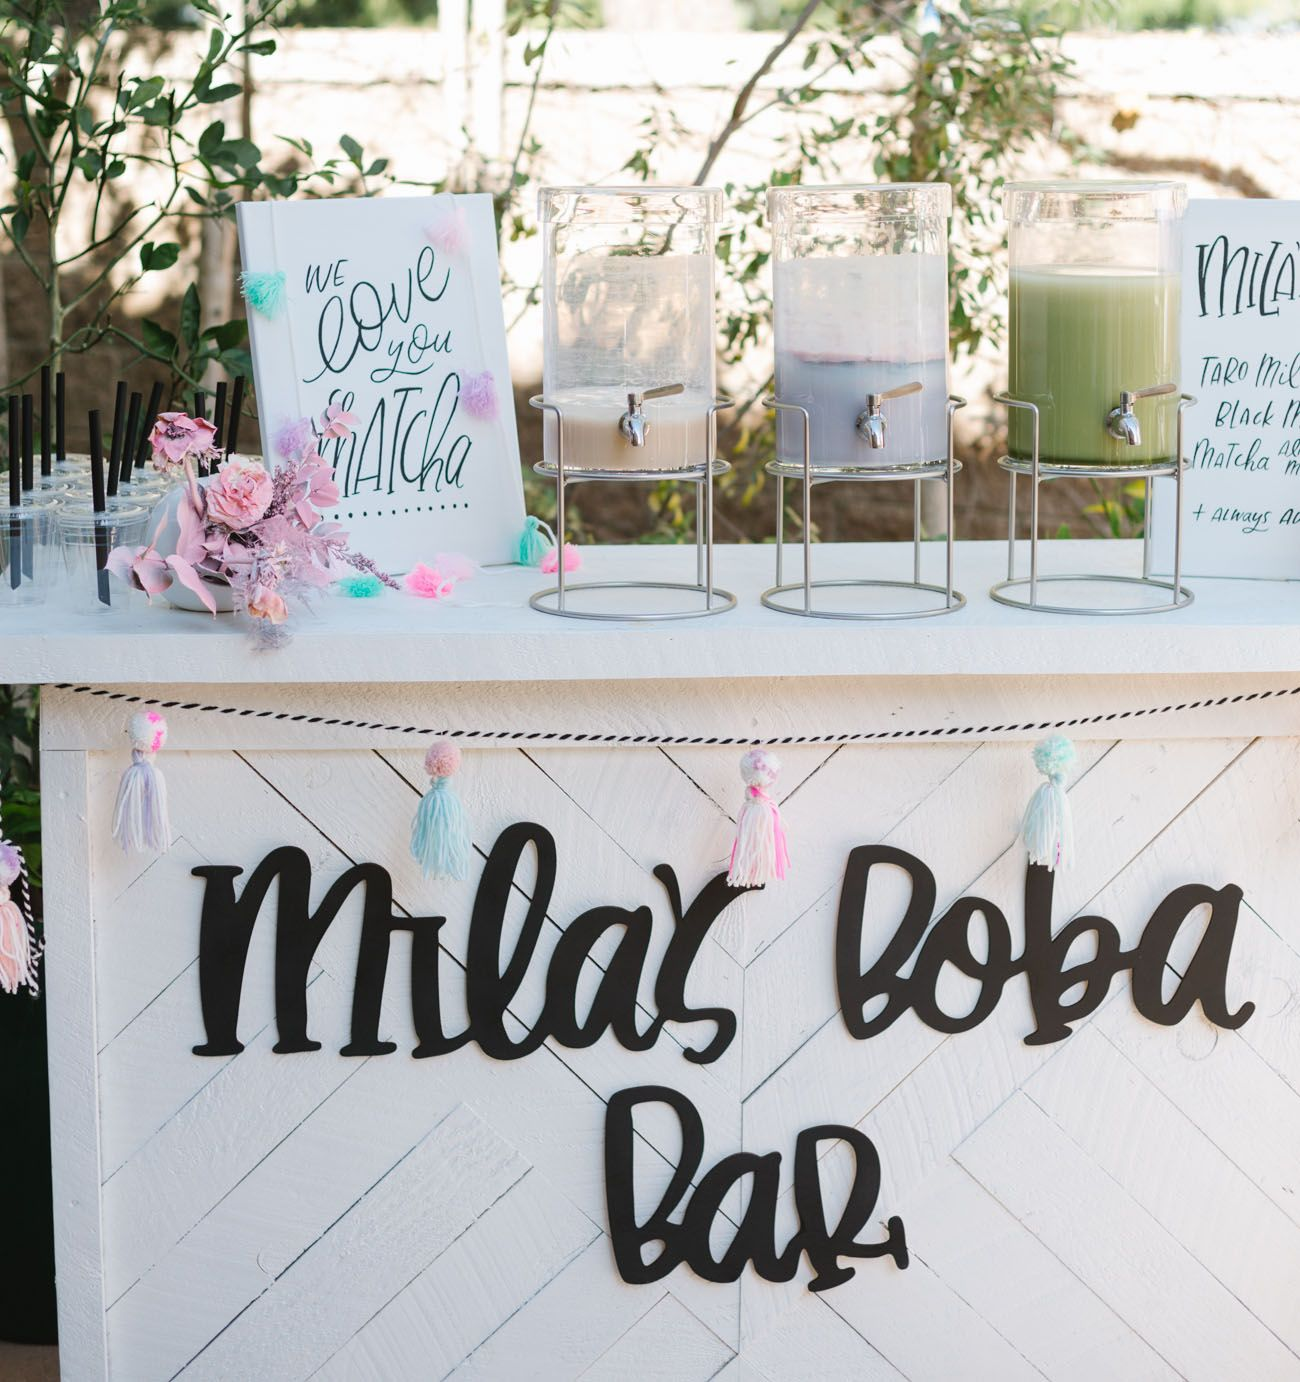 Find a cuter party than thisits a boba bar birthday